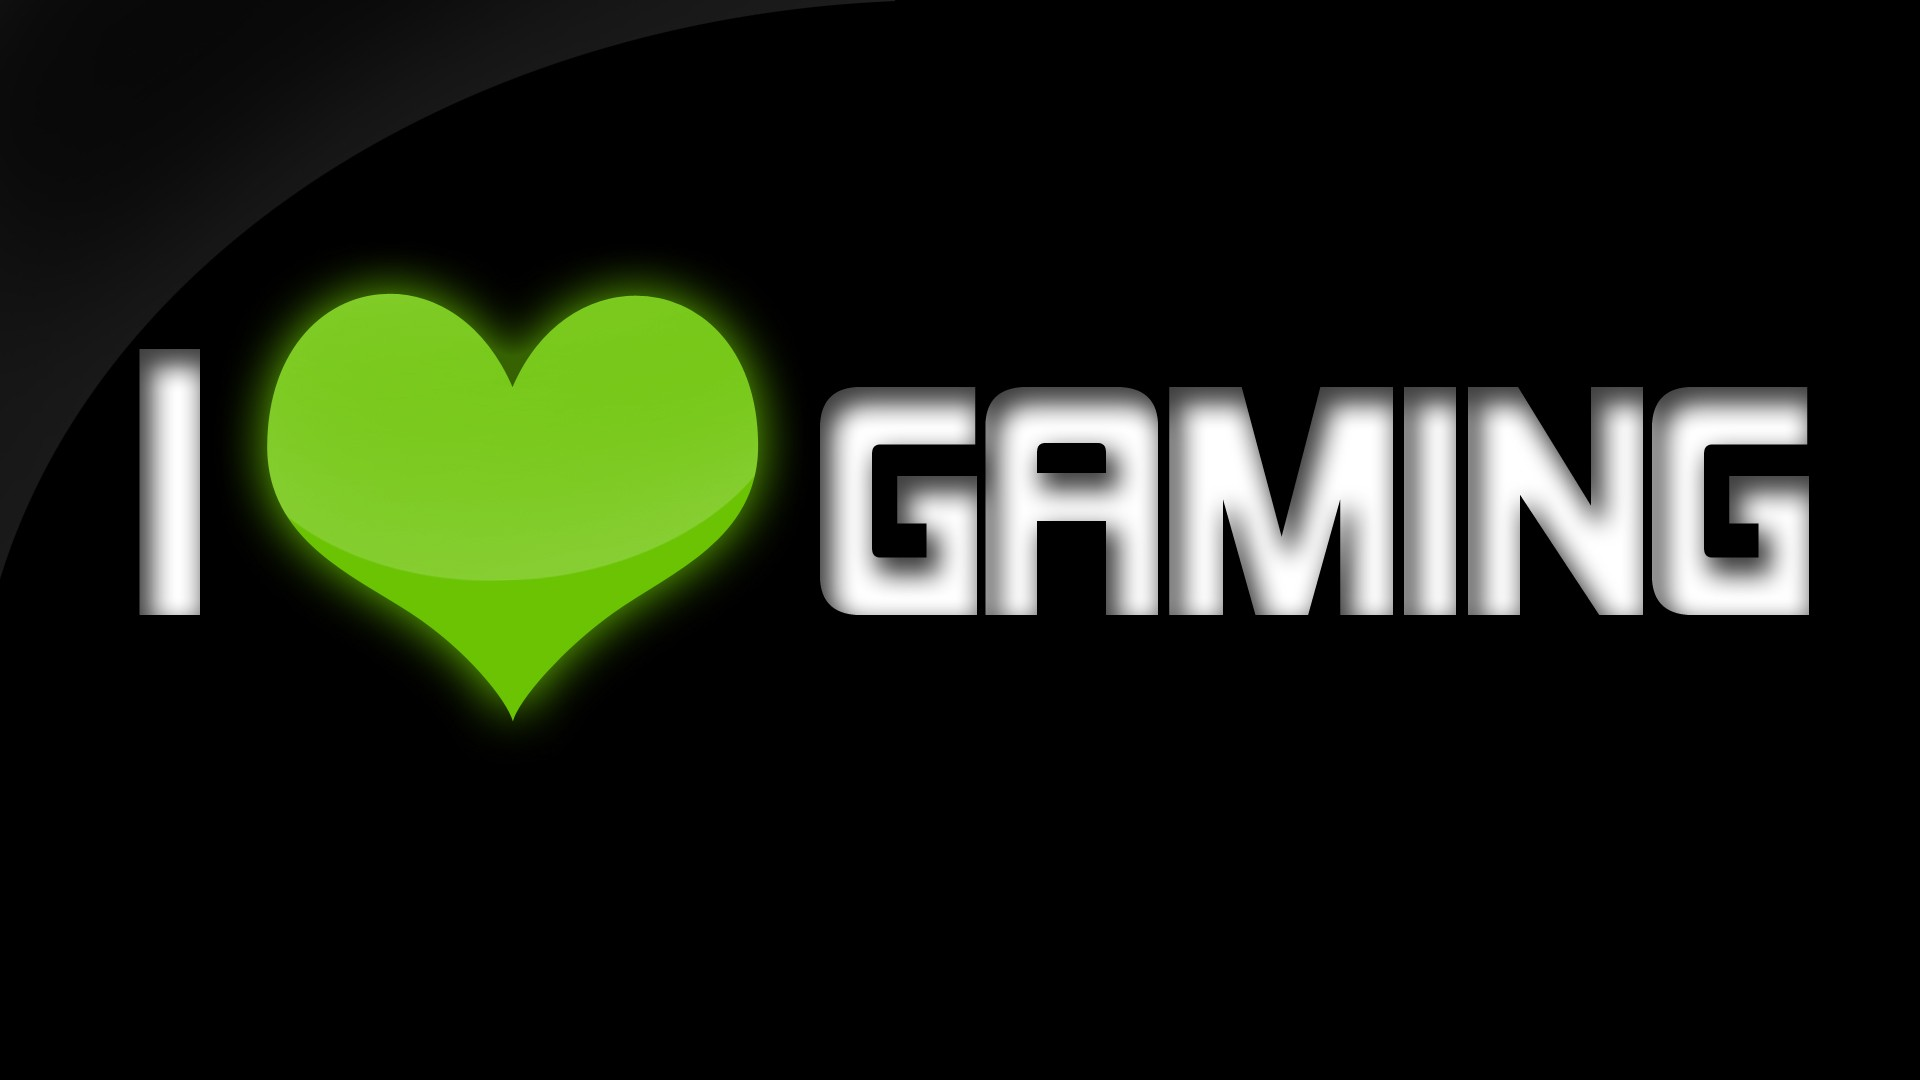 Love Gaming Wallpapers I Love Gaming Myspace Backgrounds I Love 1920x1080